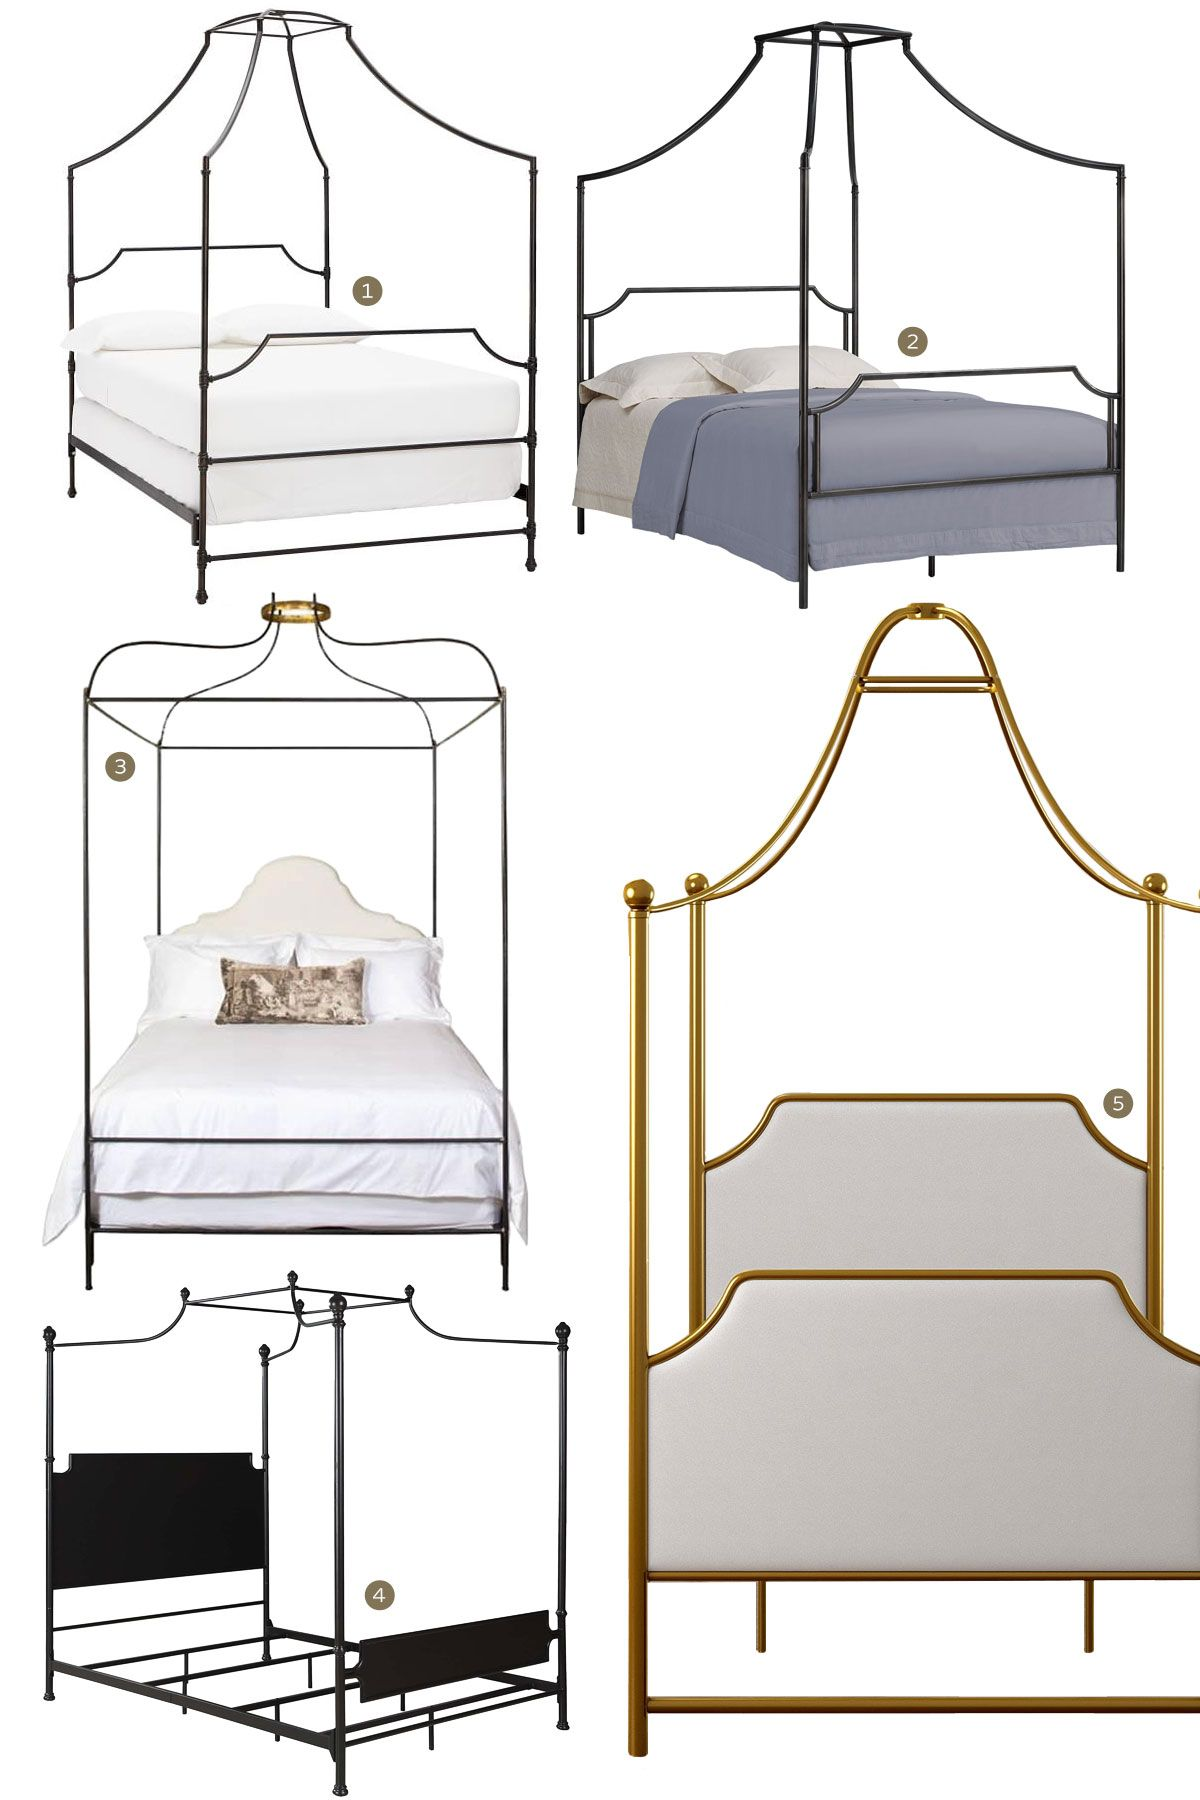 curved canopy bed on canopy beds curved metal how to make bed metal canopy bed black canopy beds pinterest